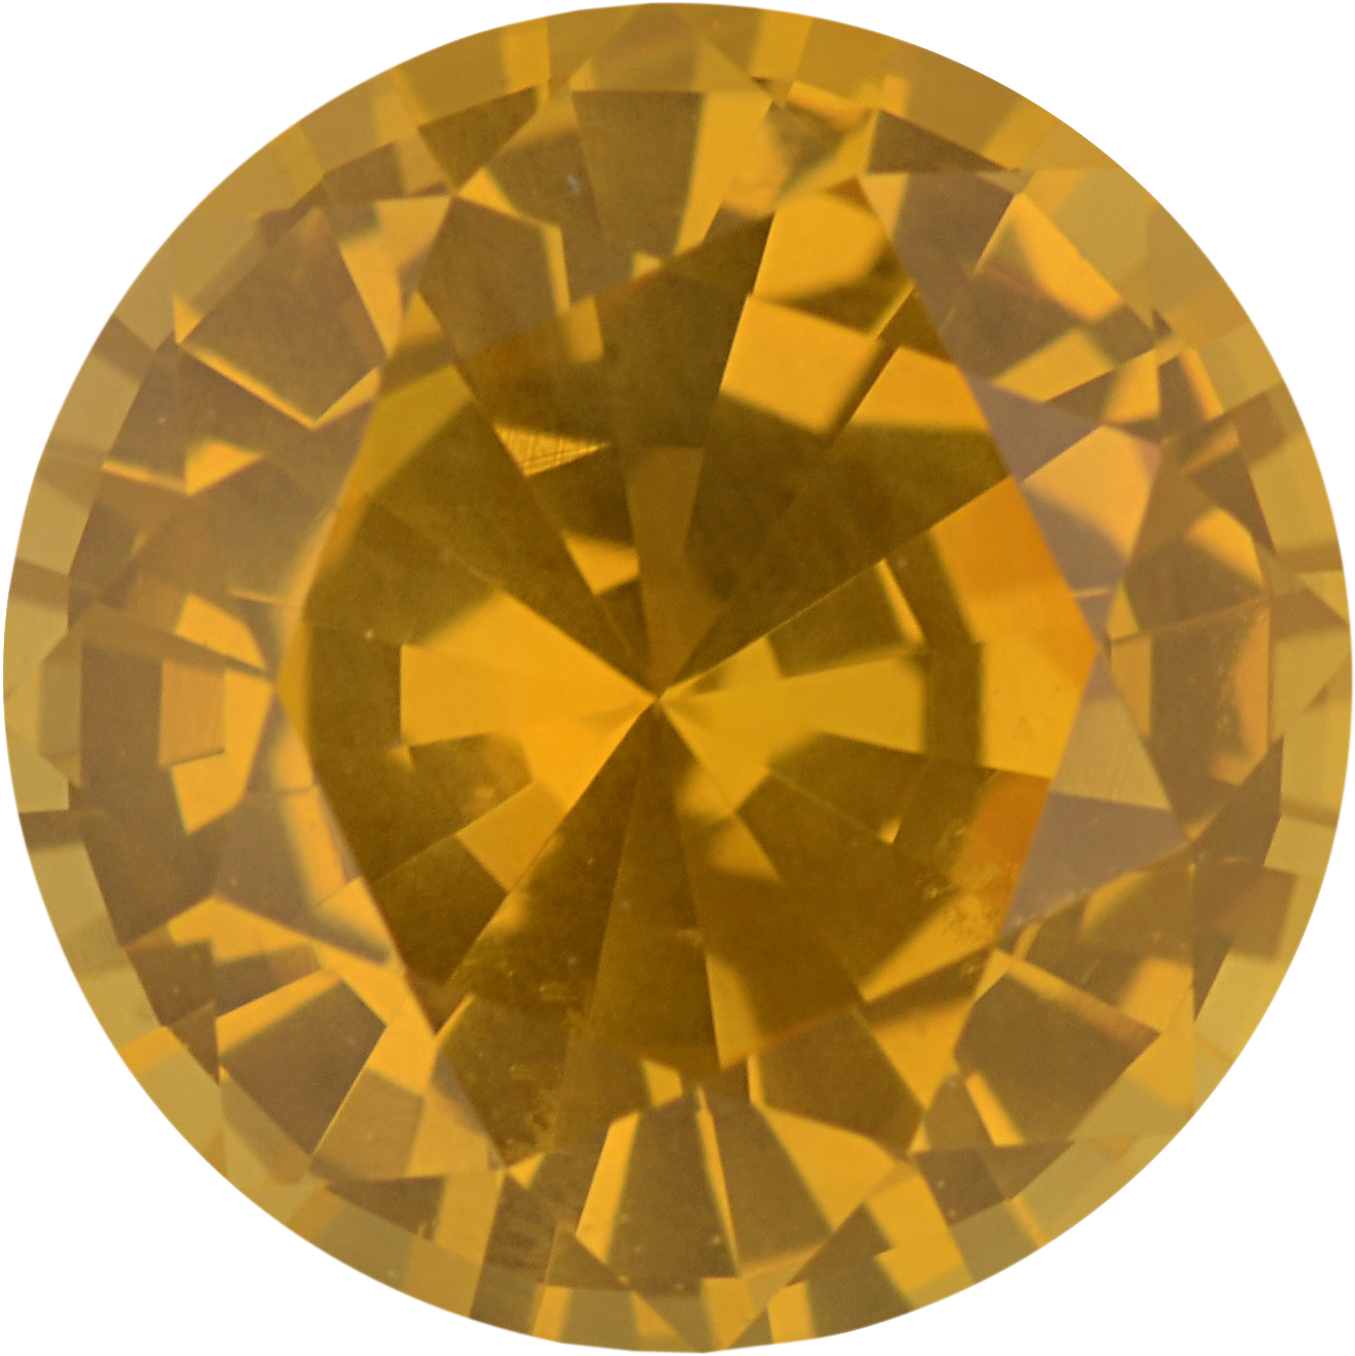 Nice Sapphire Loose Gem in Round Cut, Light Orangy Yellow, 6.73 mm, 1.37 Carats